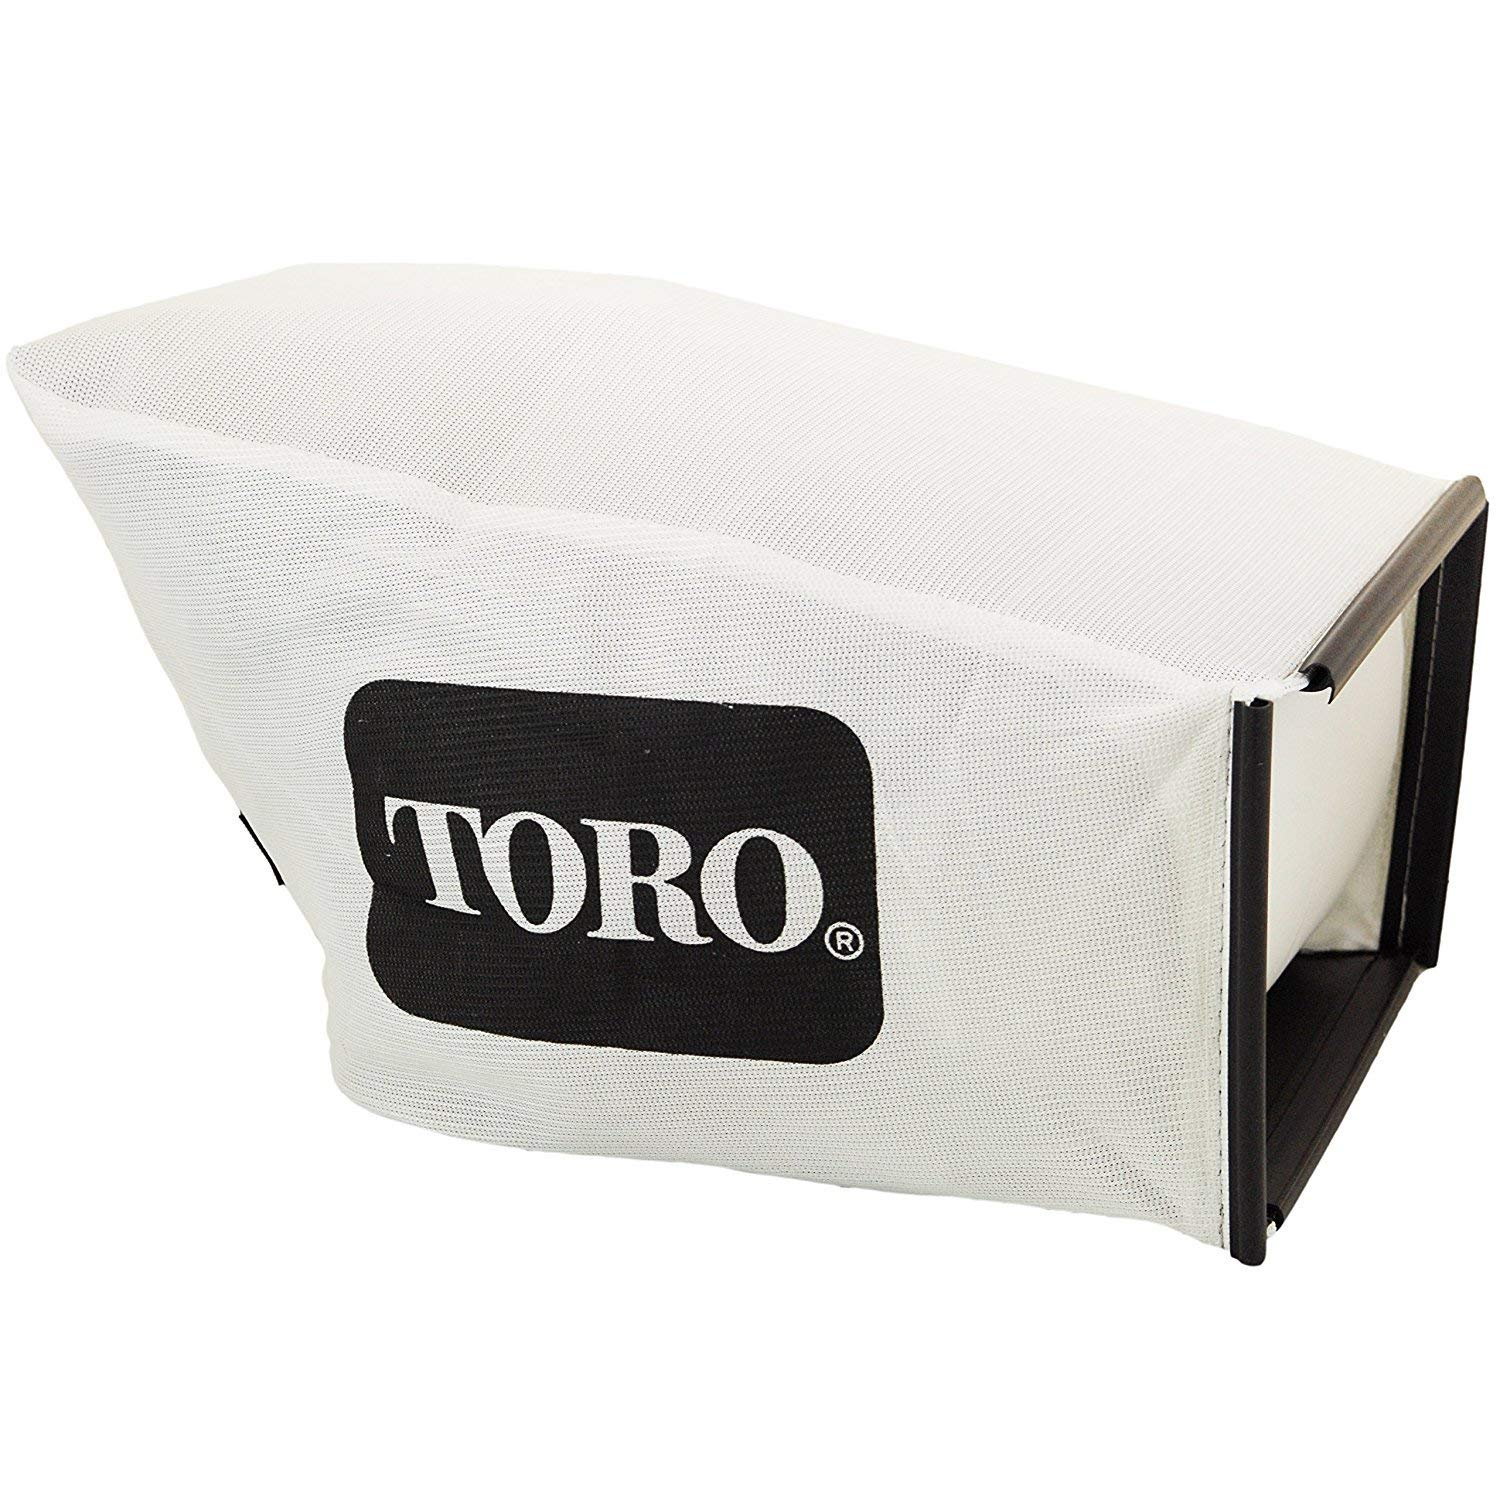 Toro 115-4673 Grass Bag Assembly by Toro